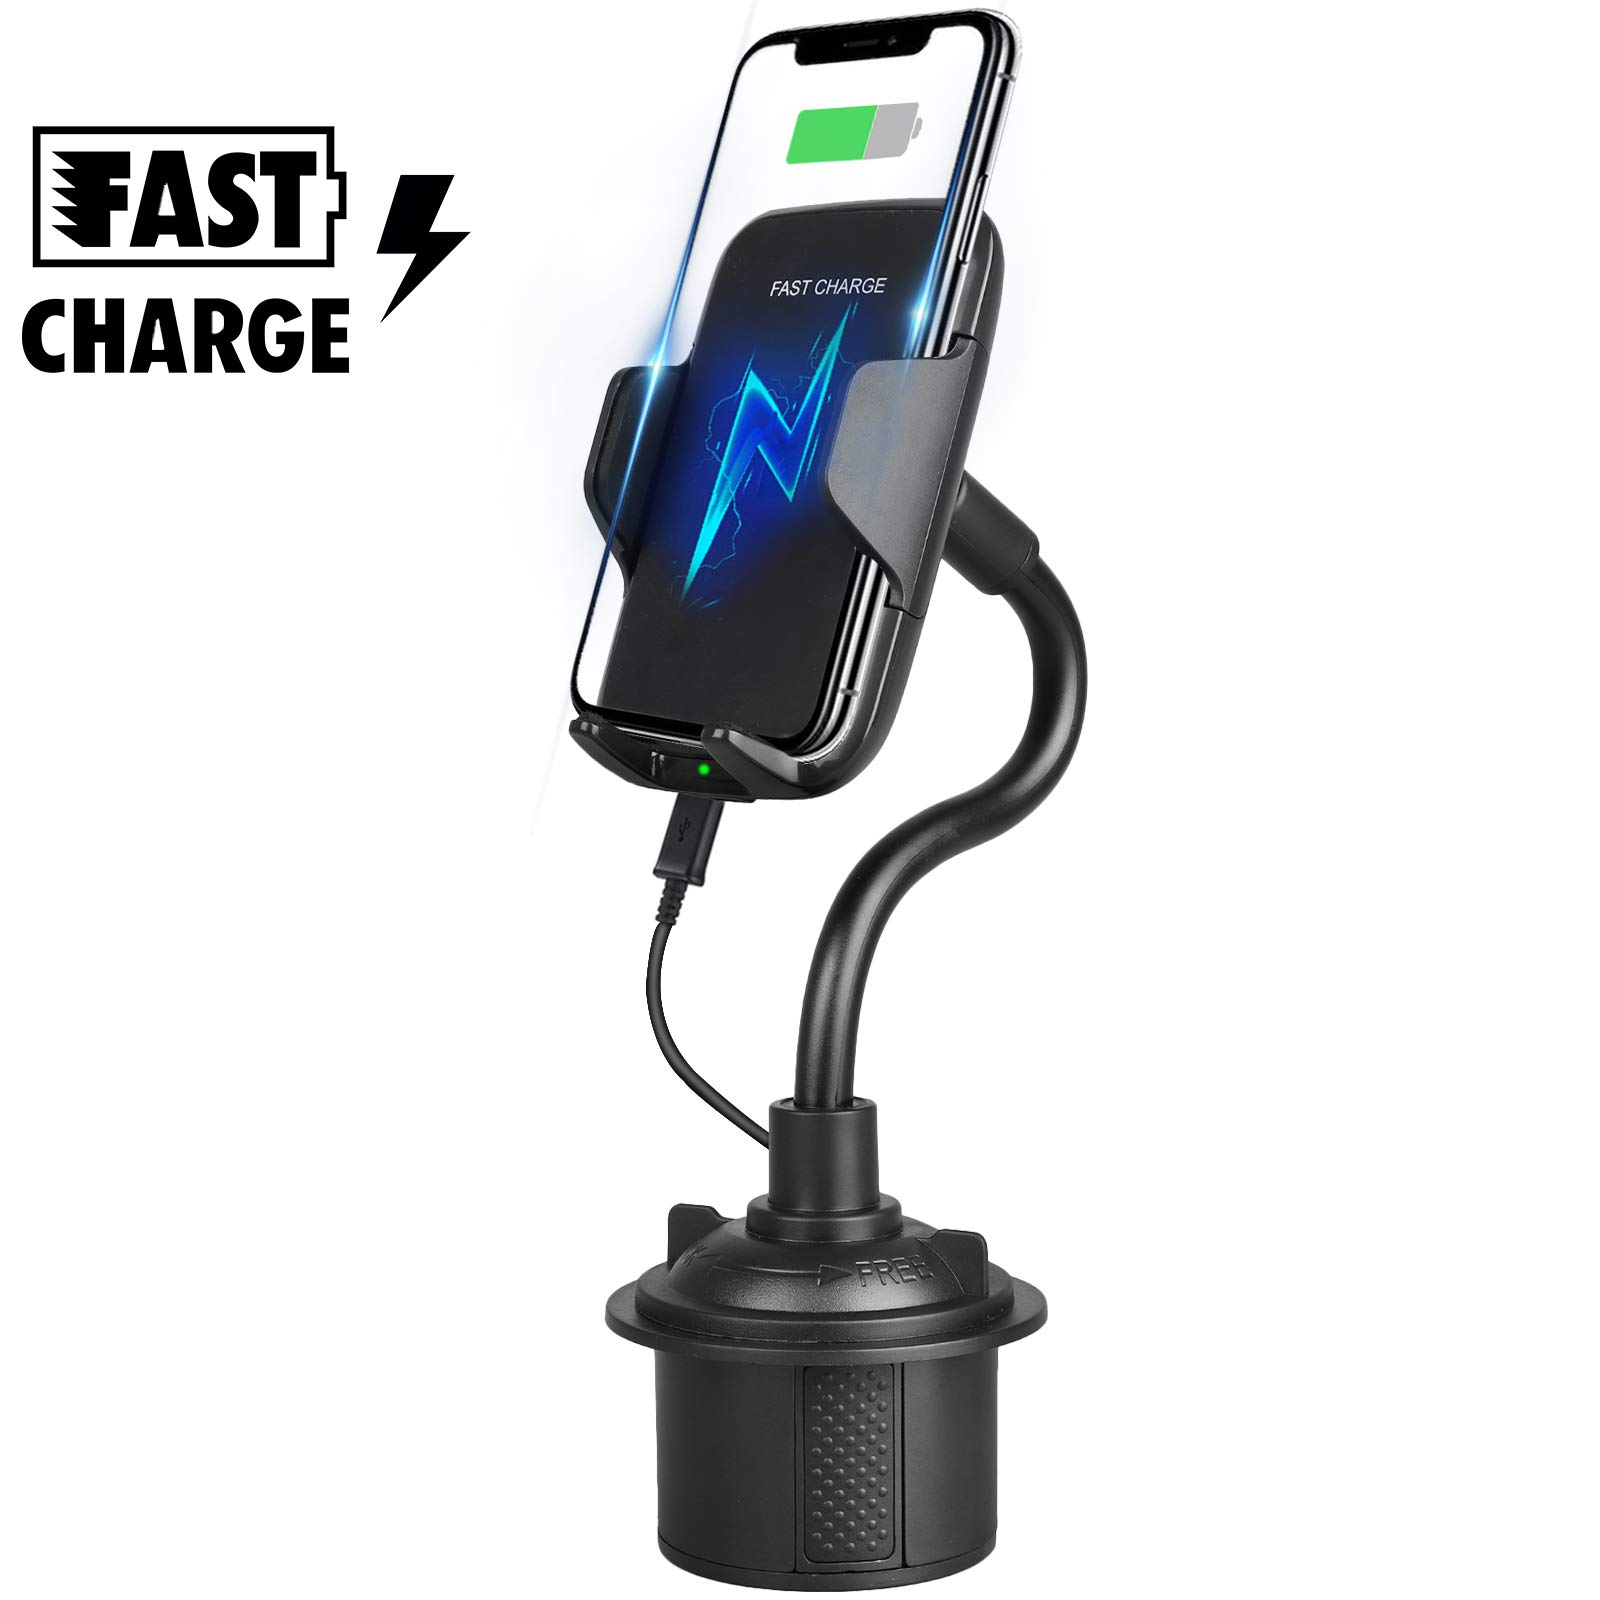 Sunjoyco Qi Wireless Car Mount Charger, 2-in-1 10W/7.5W Fast Charging Cup Holder Phone Mount Cradle Compatible with iPhone Xs XS Max XR X 8 Plus, Samsung Galaxy S10 S10+ S9 S9+ S8 S8+ Note 9